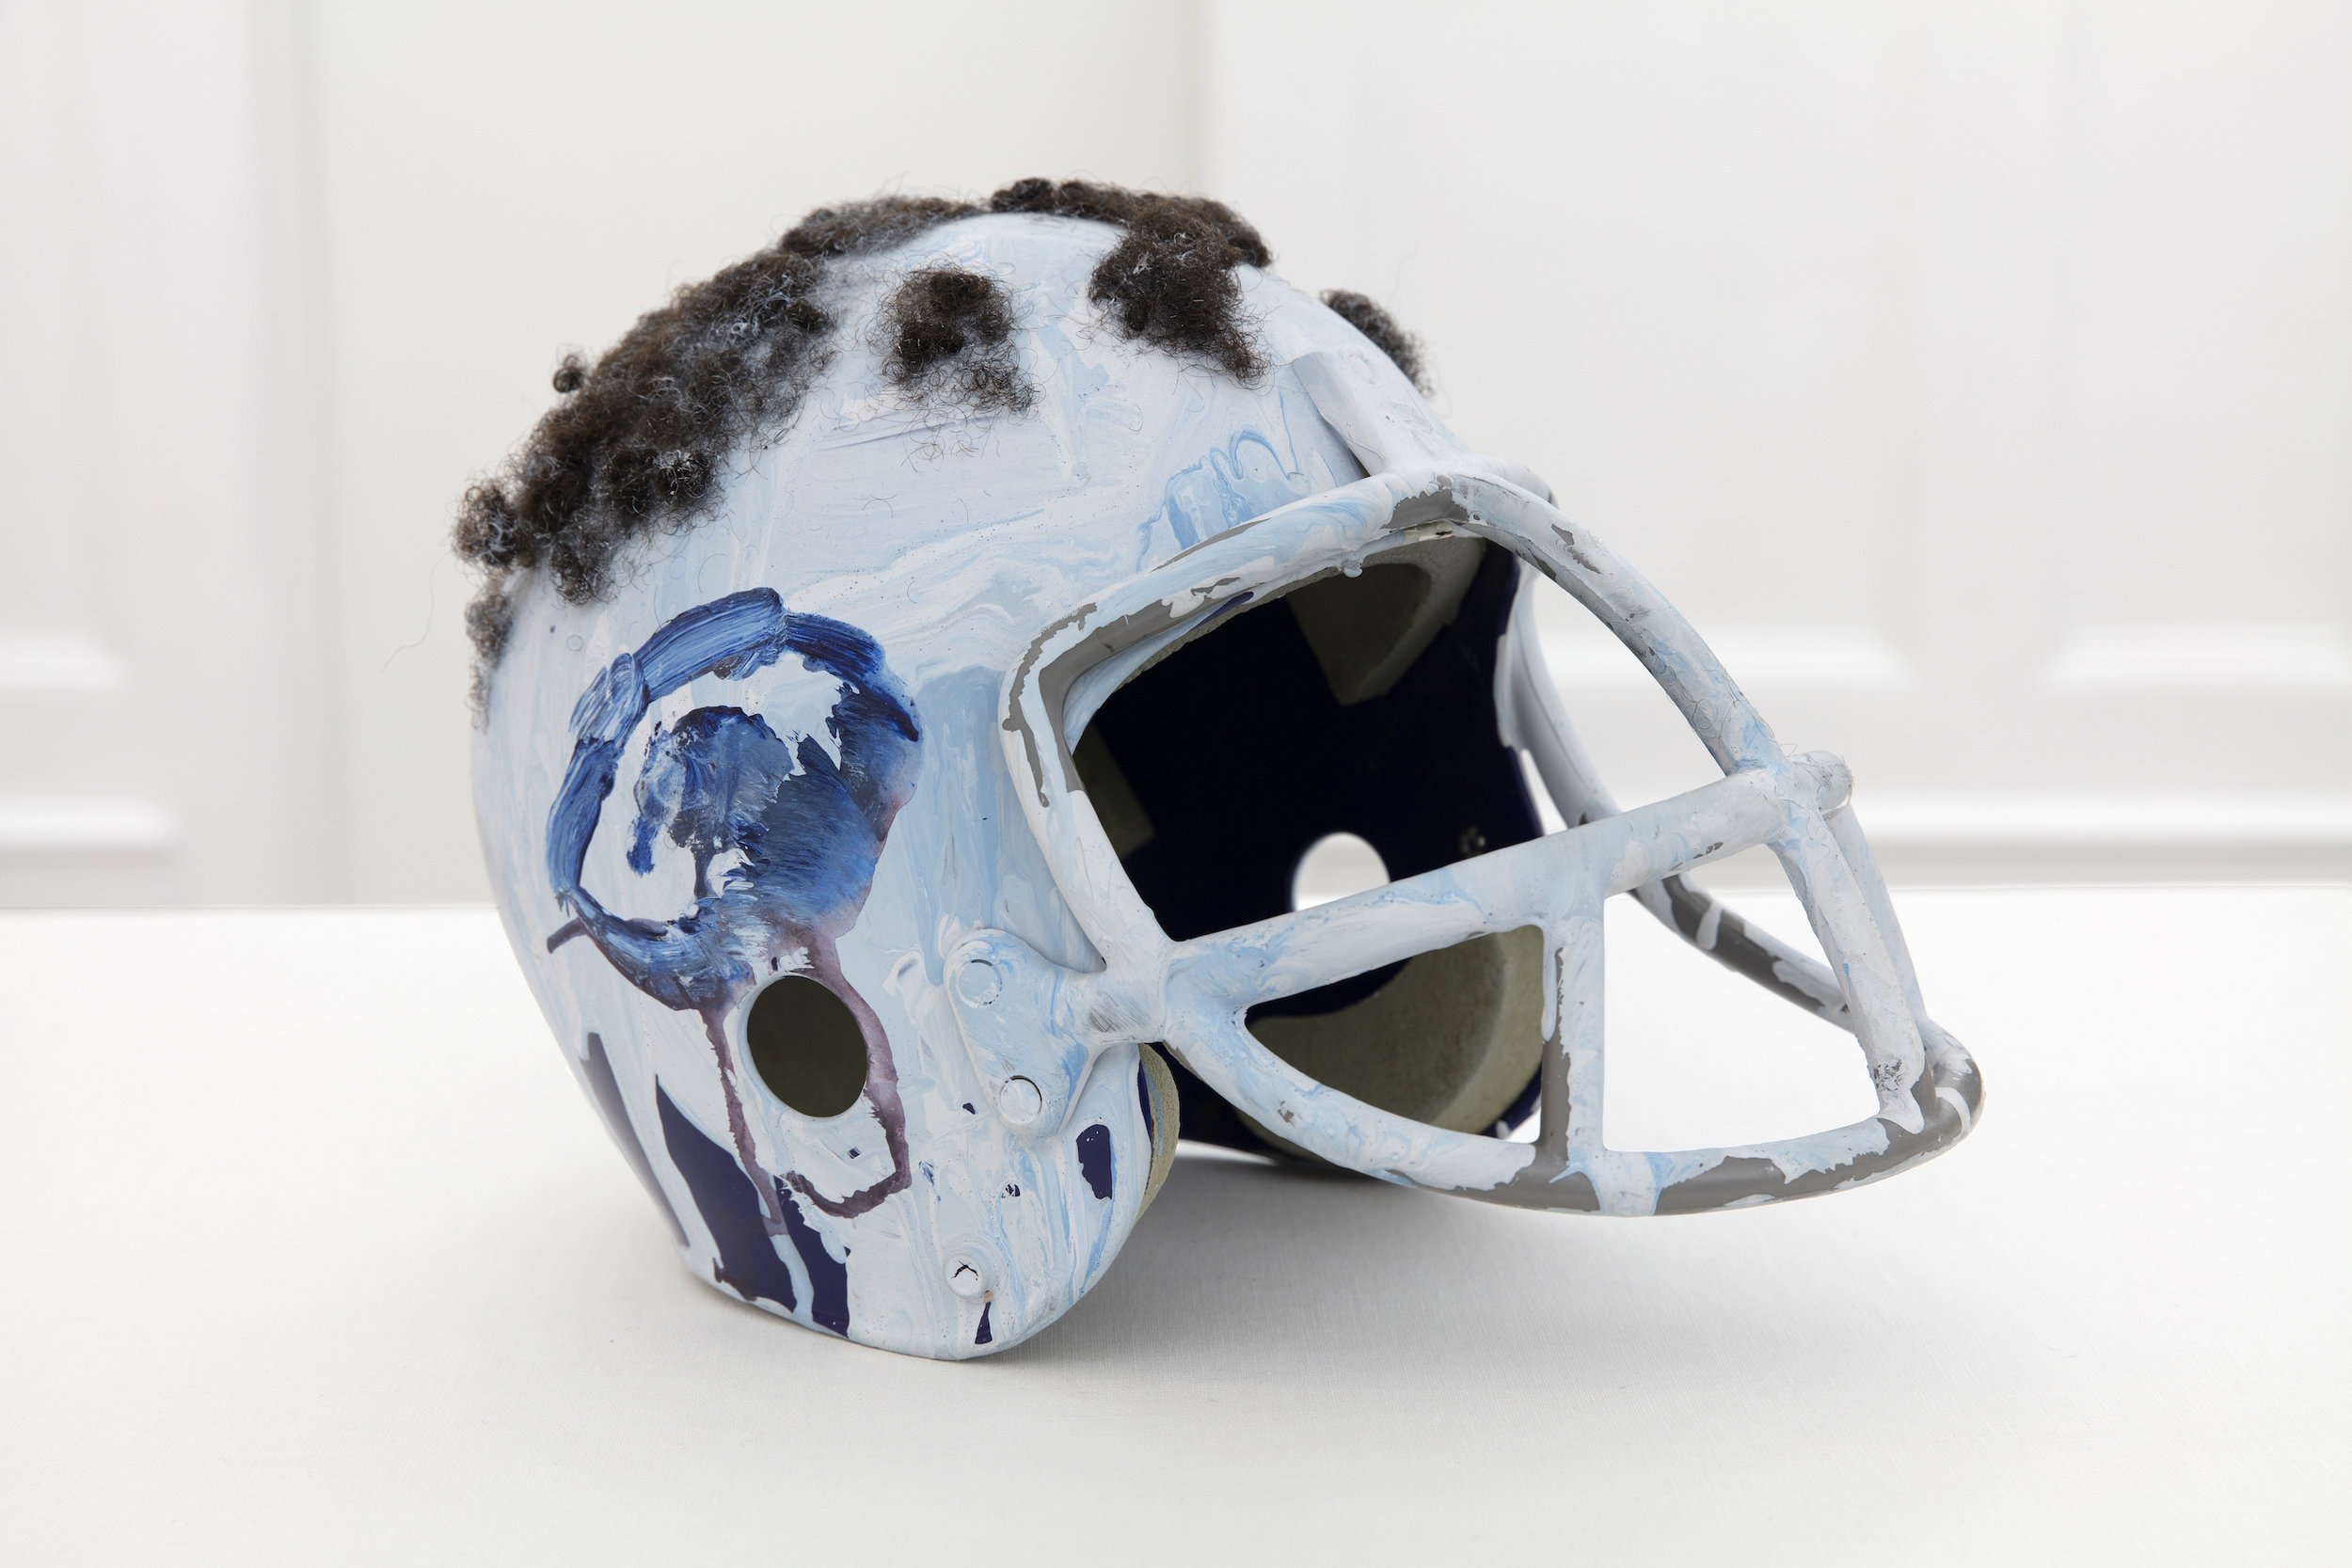 JEAN-MICHEL BASQUIAT,  Untitled (Football Helmet),  c. 1981-1984. Mixed media including acrylic and human hair on football helmet. 9 x 8 x 13 inches. JMBQ81.004 ©2019 The Andy Warhol Foundation for the Visual Arts, Inc. / Licensed by American Rights Society (ARS), New York. ©The Estate of Jean-Michel Basquiat / ADAGP, Paris/ ARS, New York 2019.